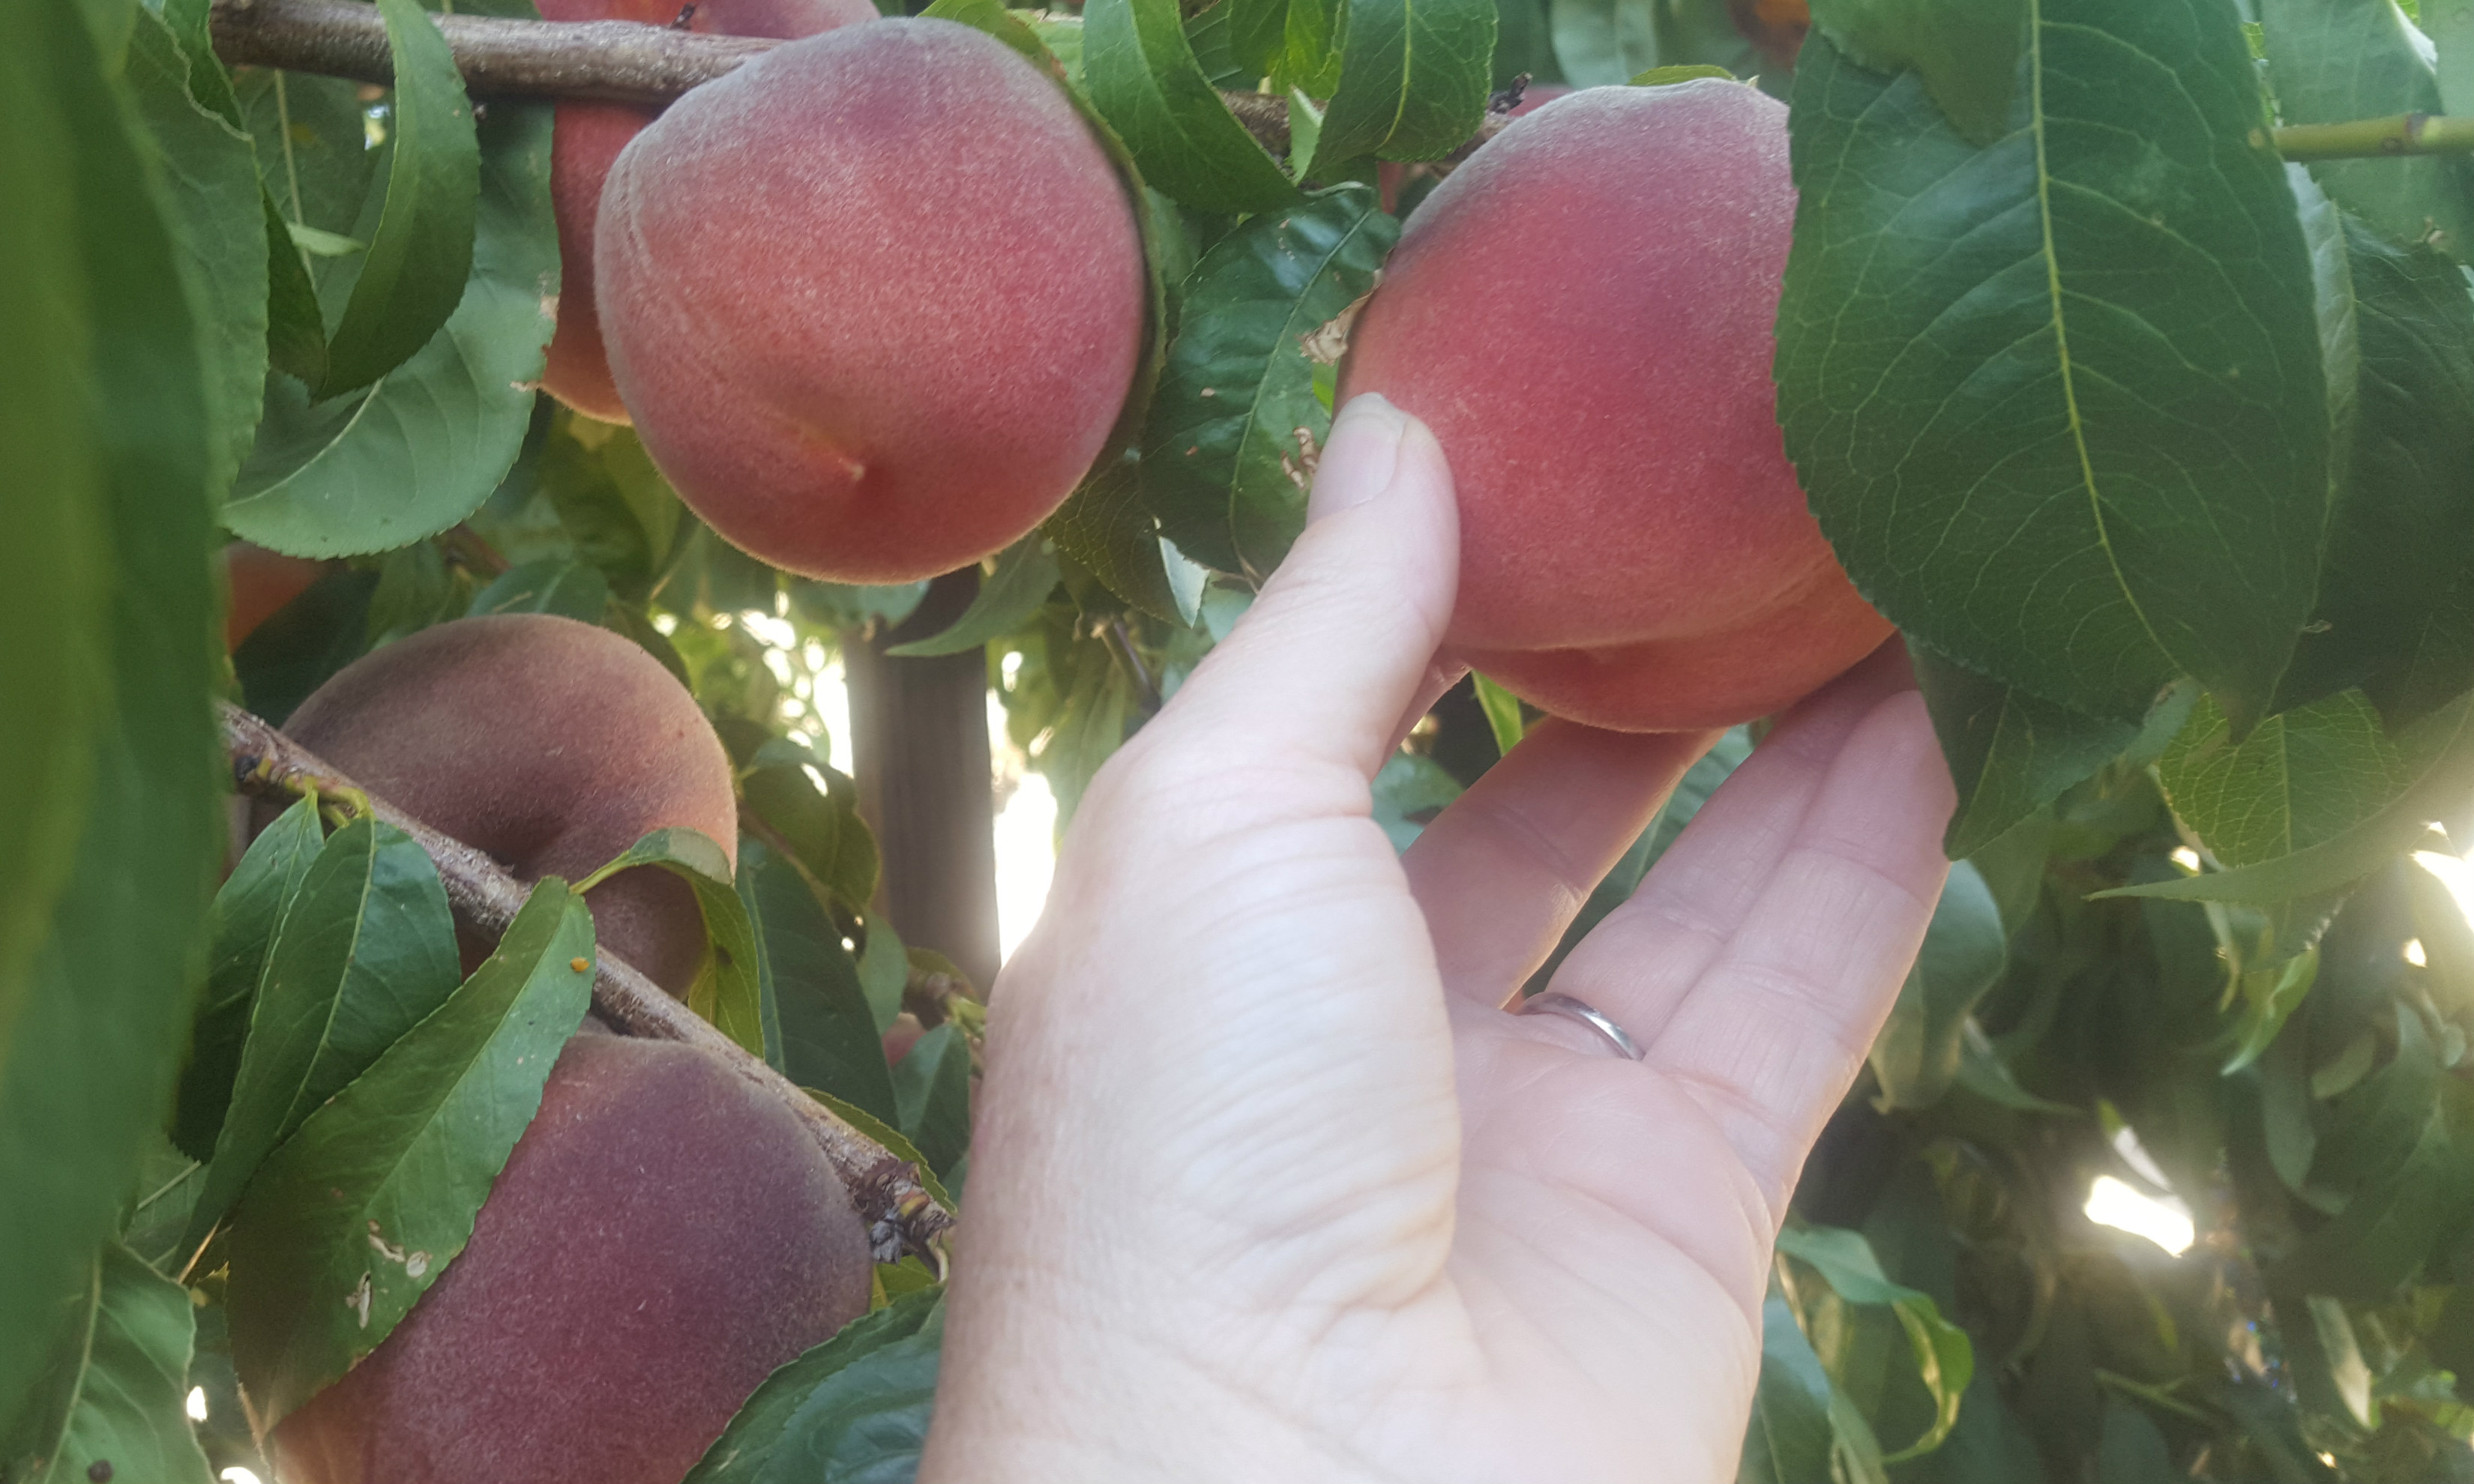 hand grabbing peach from tree